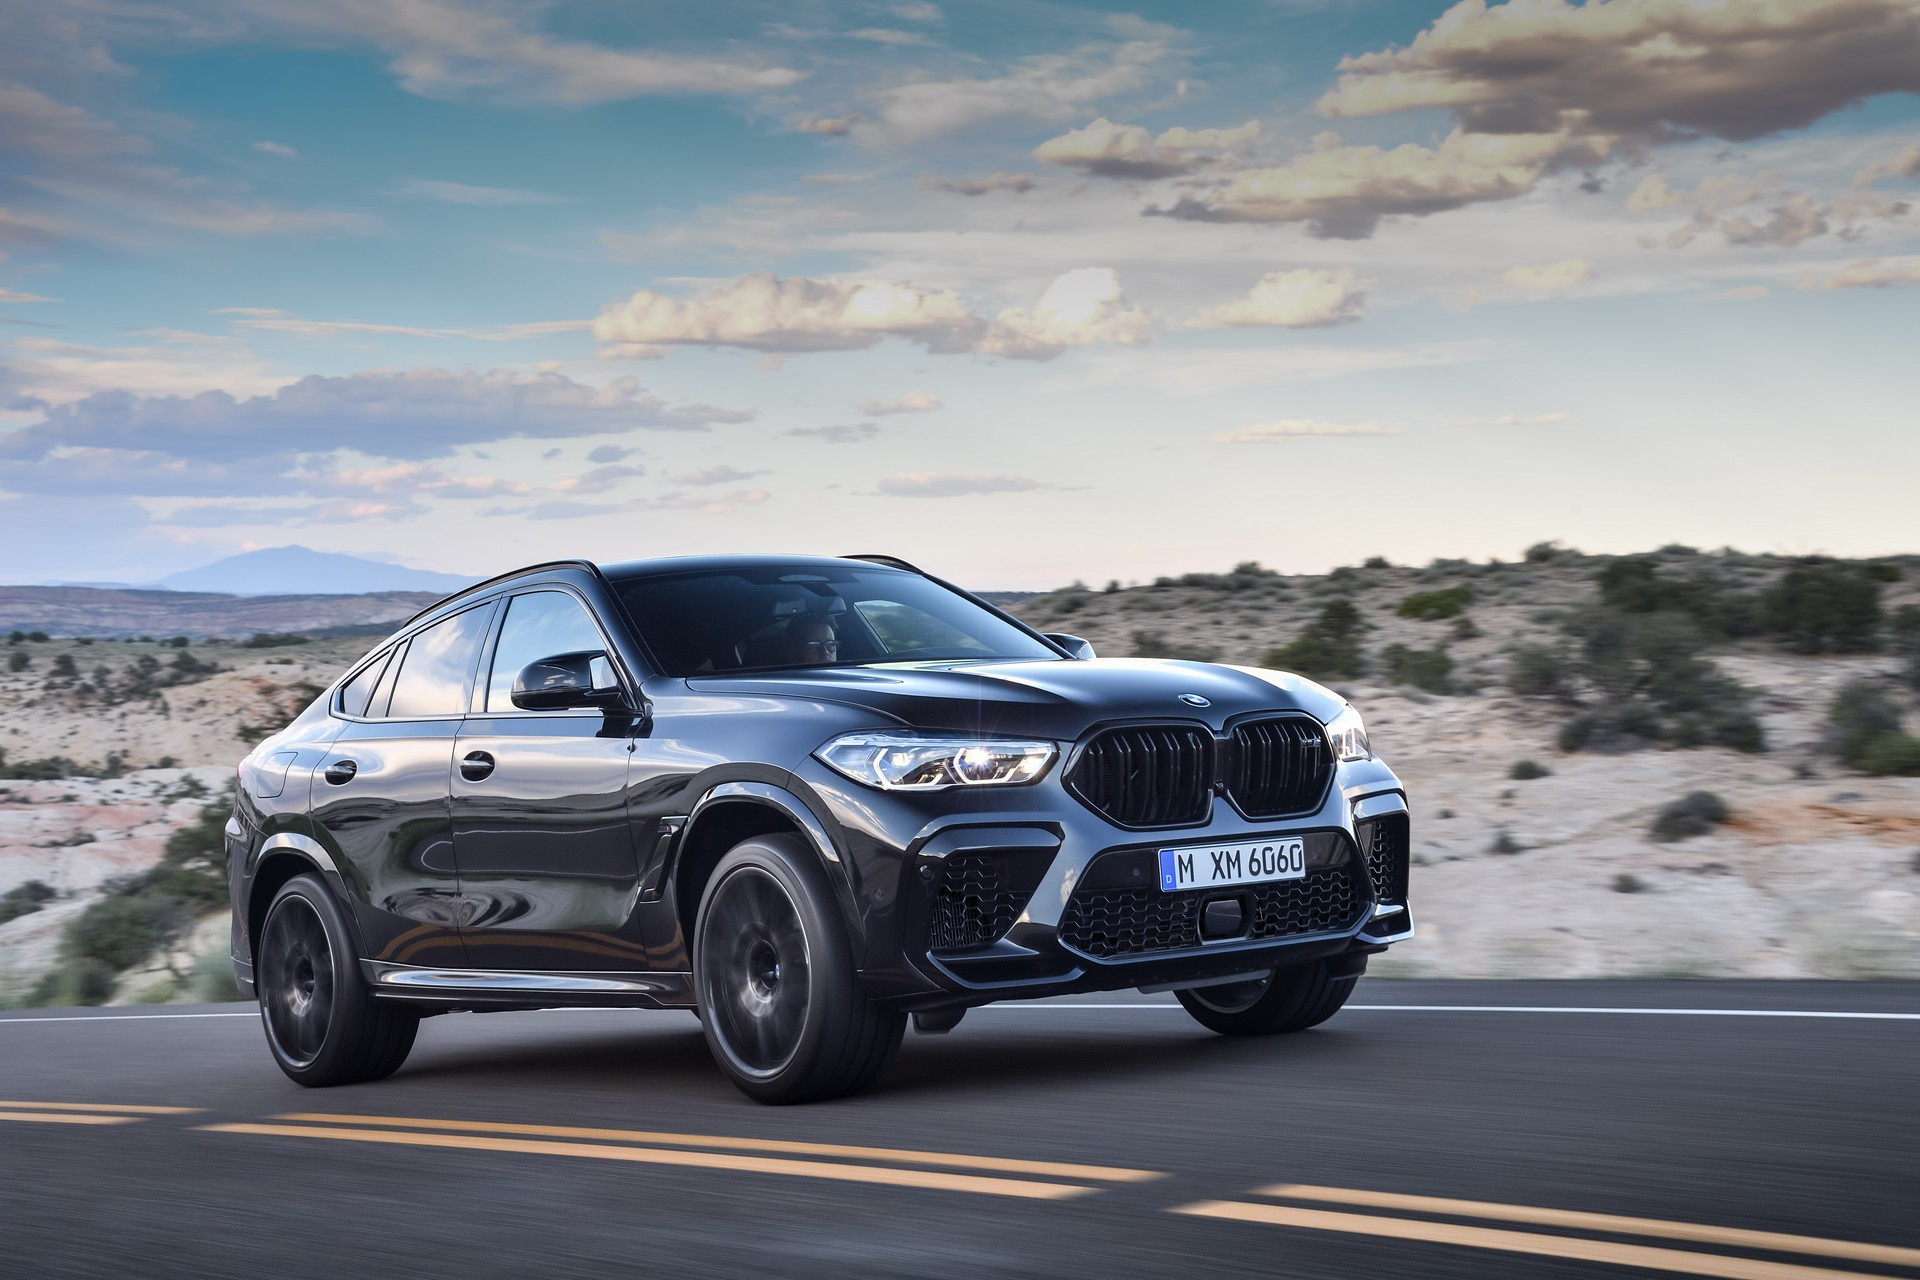 BMW X6 M Competition: 625hp SUV Coupe Revealed